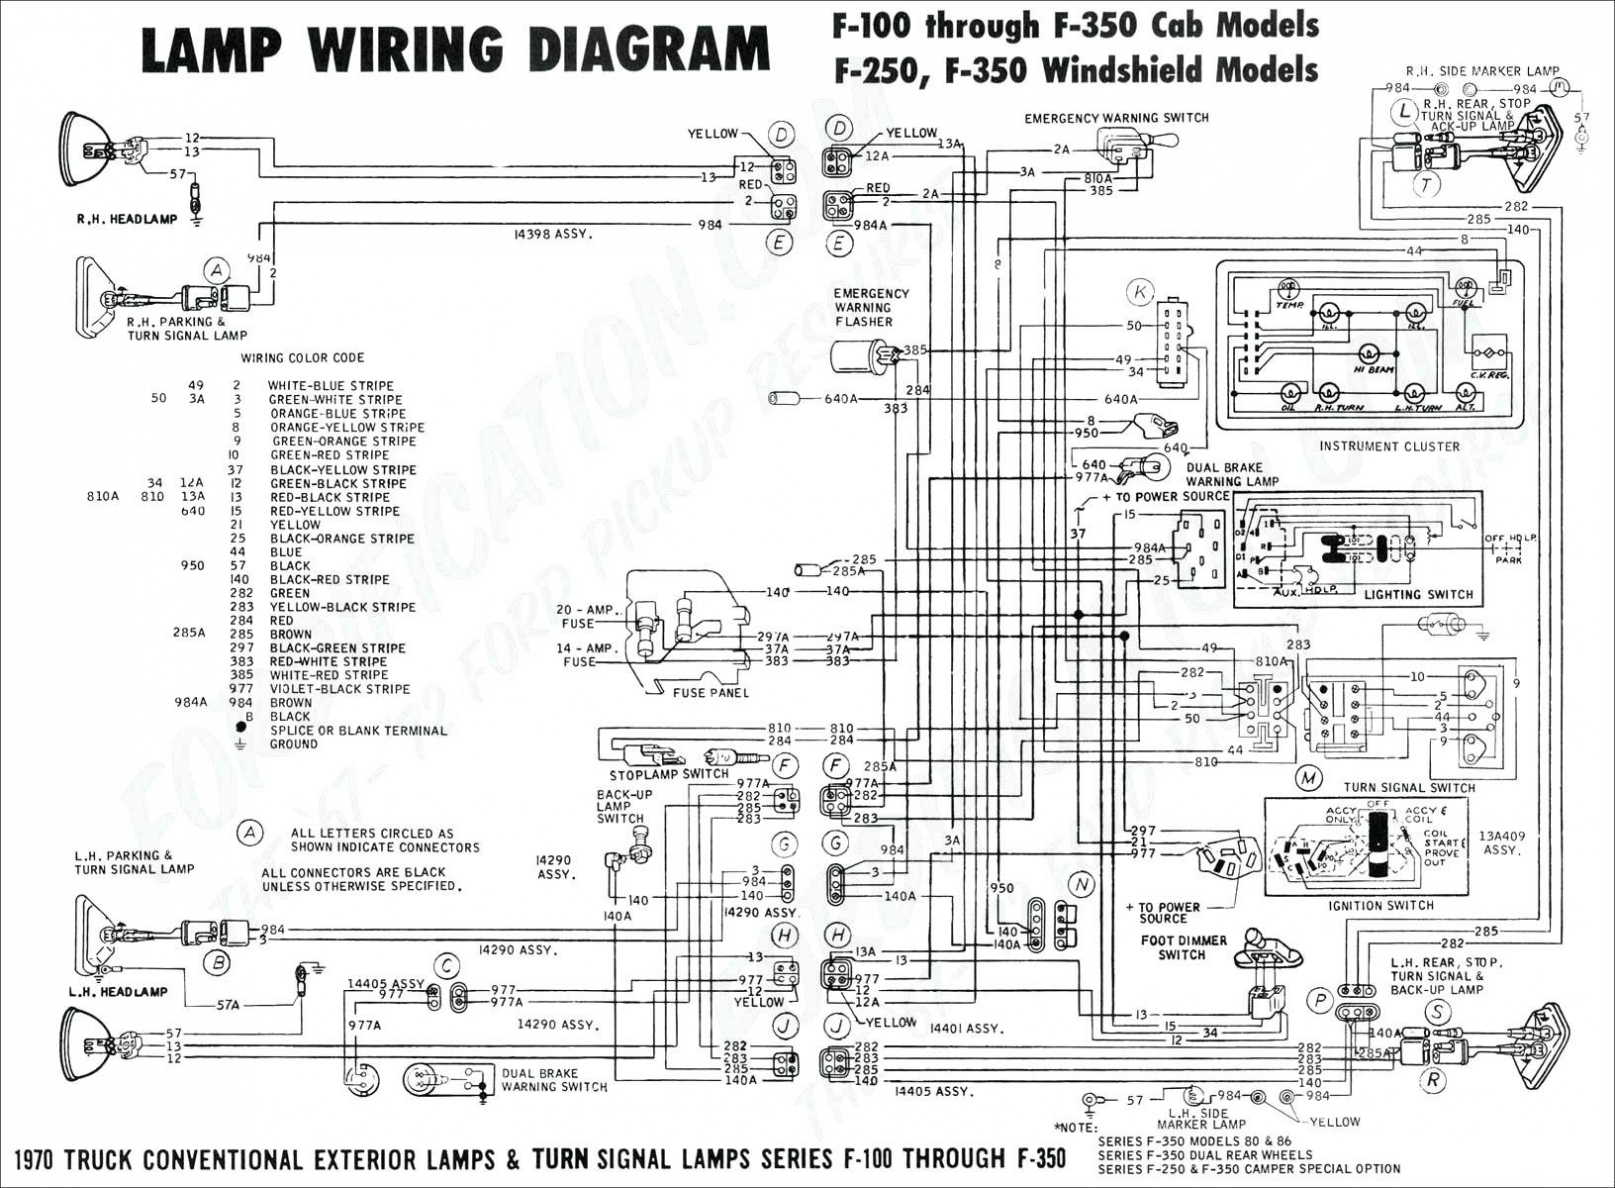 2003 Gmc Savana Wiring Diagram 2002 Gmc Yukon Xl Radio Wiring